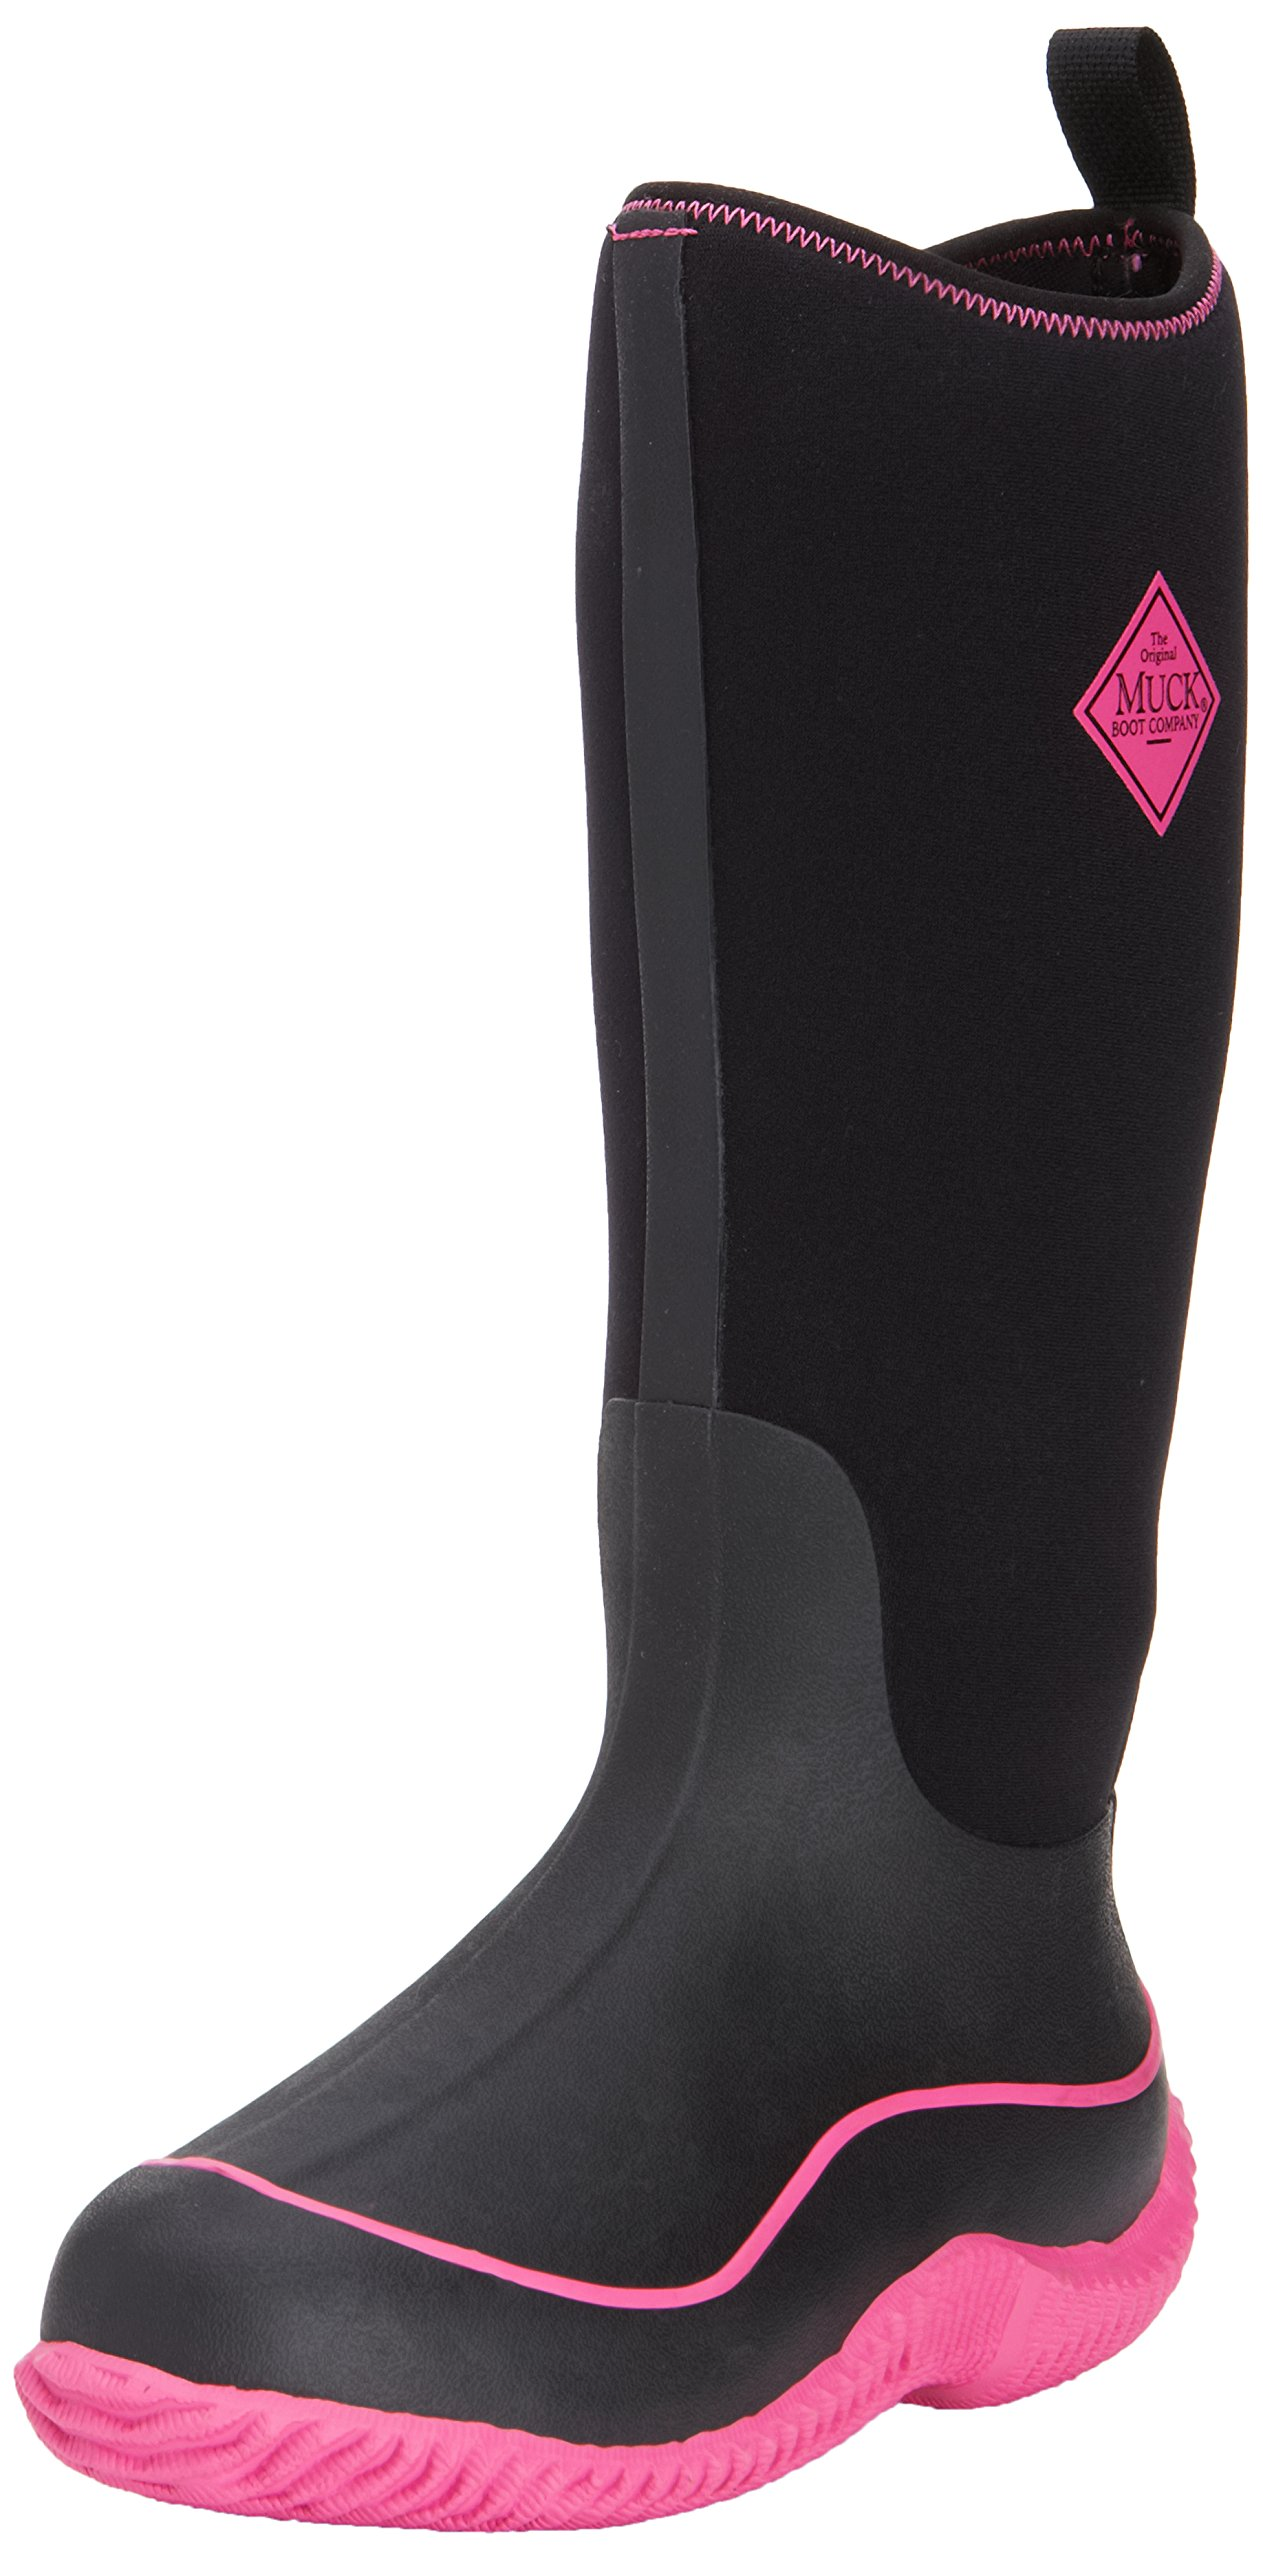 Muck Boot Women's Hale Snow Boot, Black/Hot Pink, 8 M US by Muck Boot (Image #2)